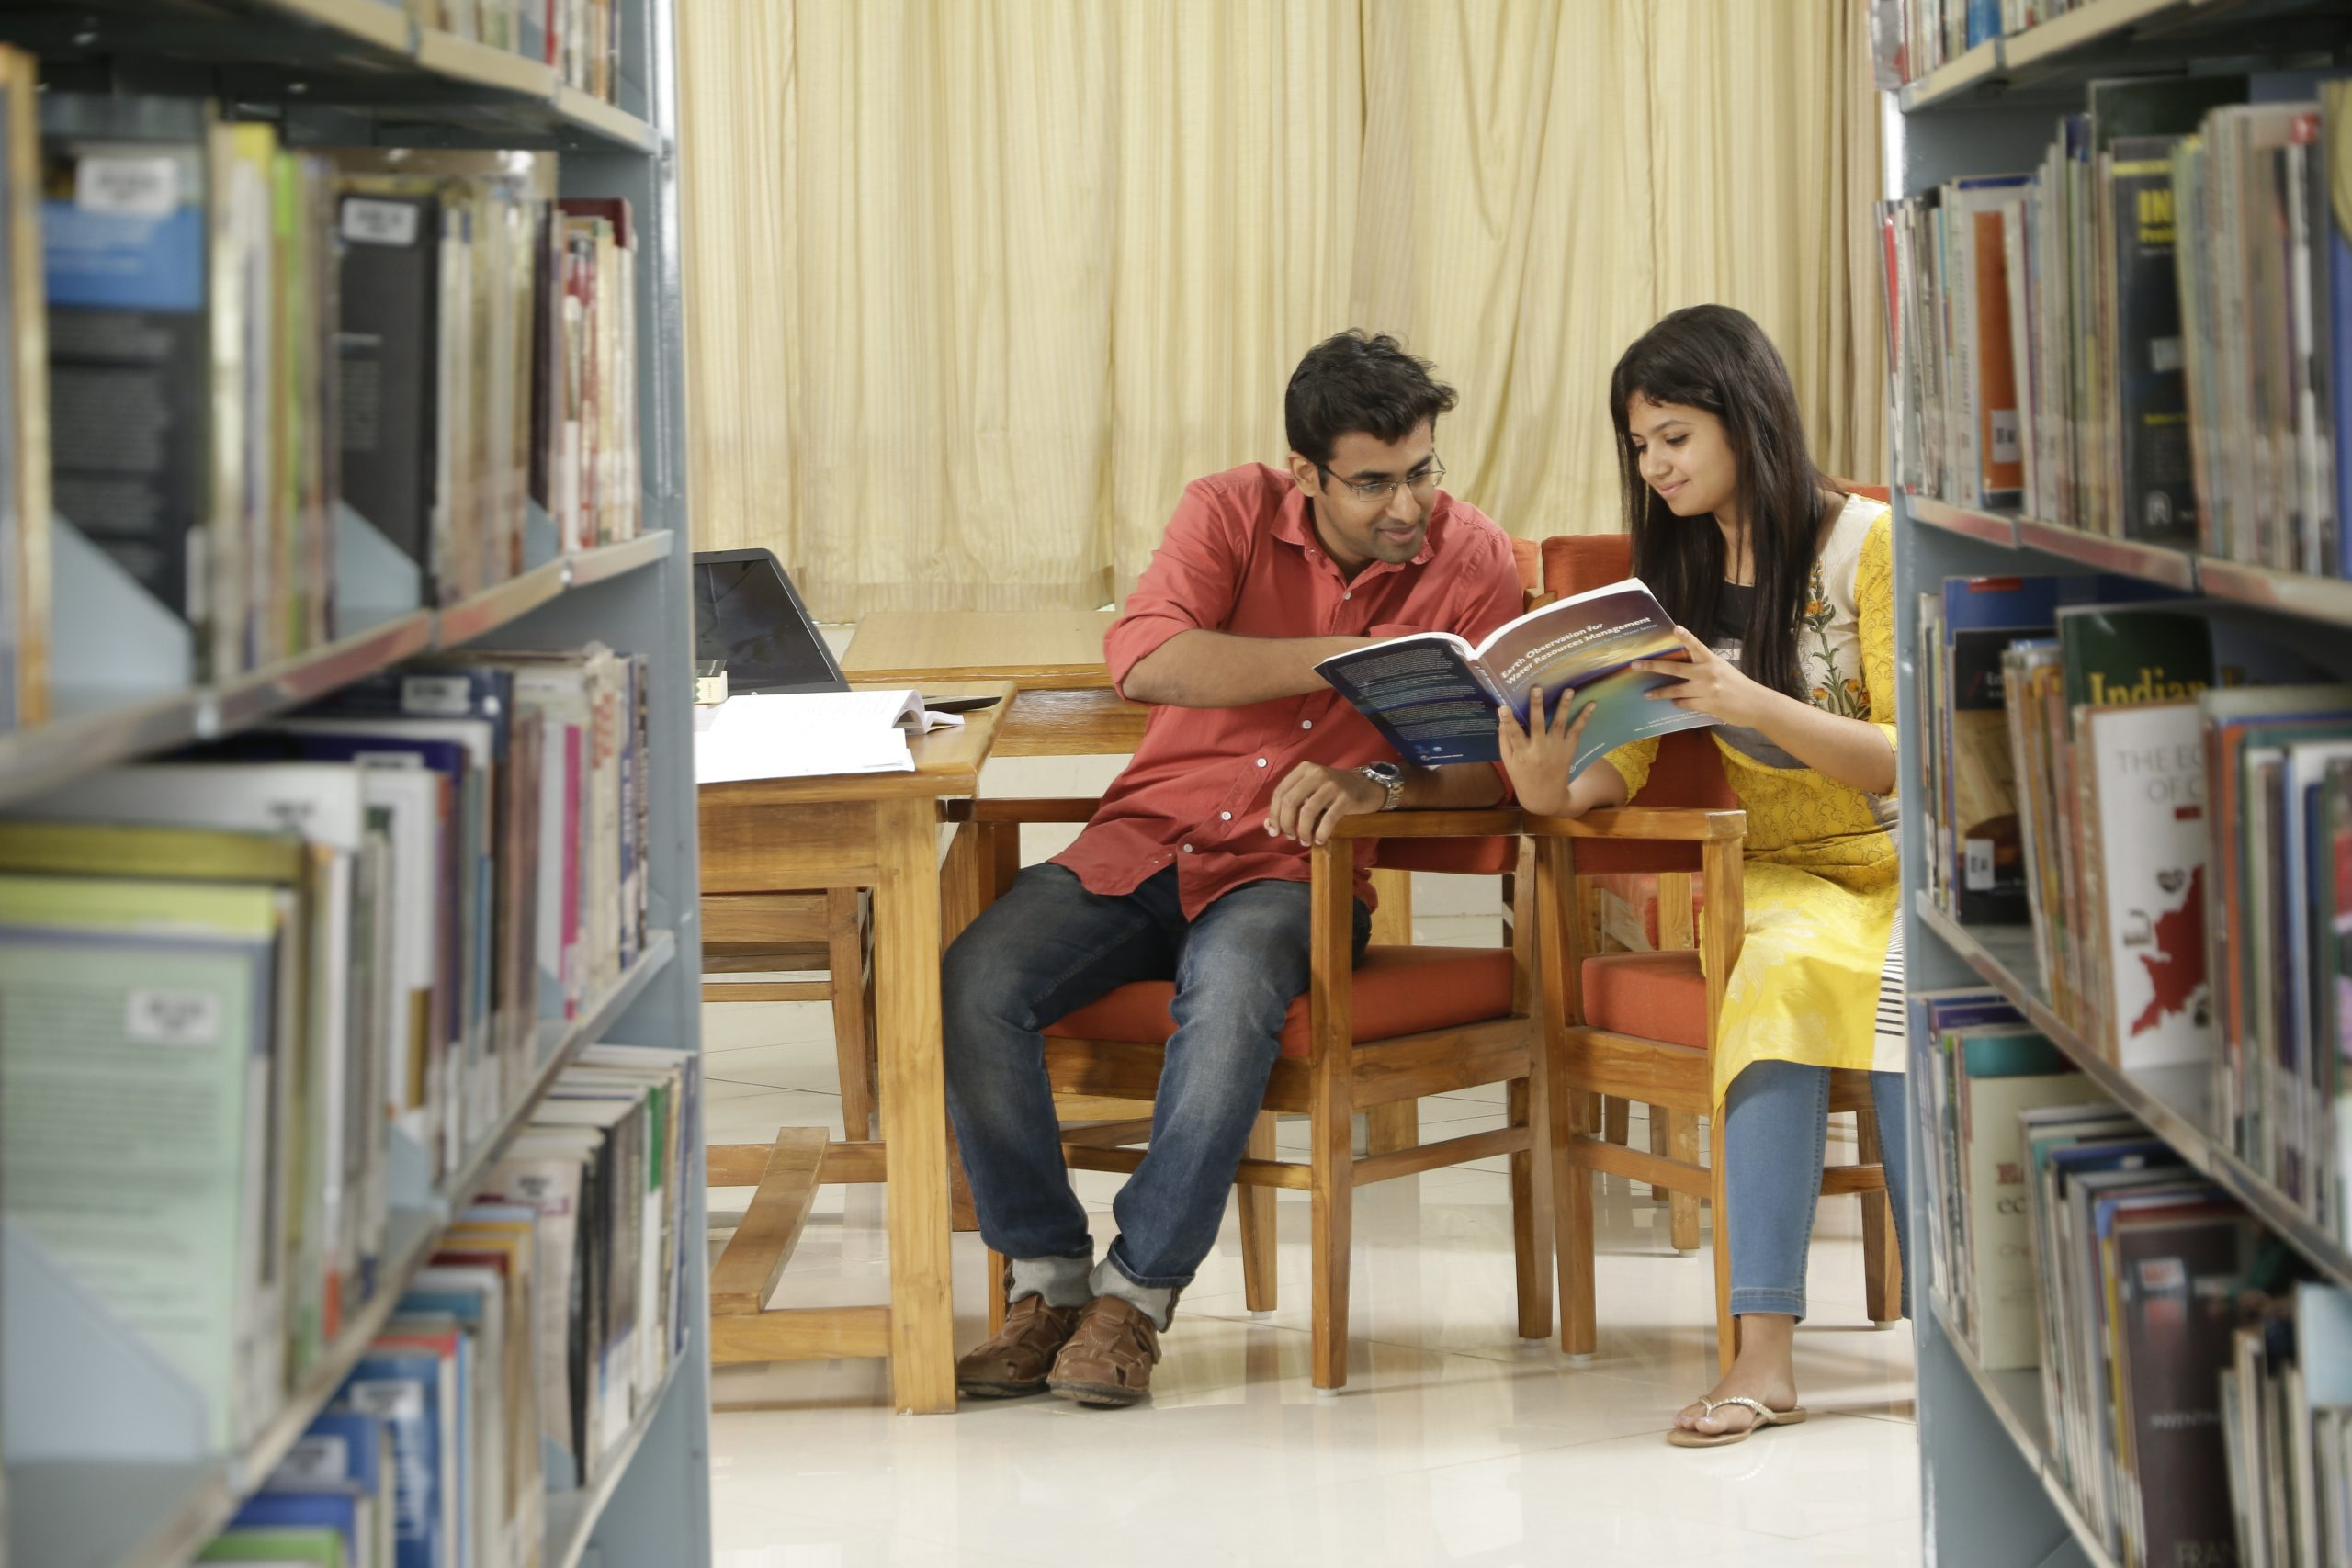 student-in-library-3